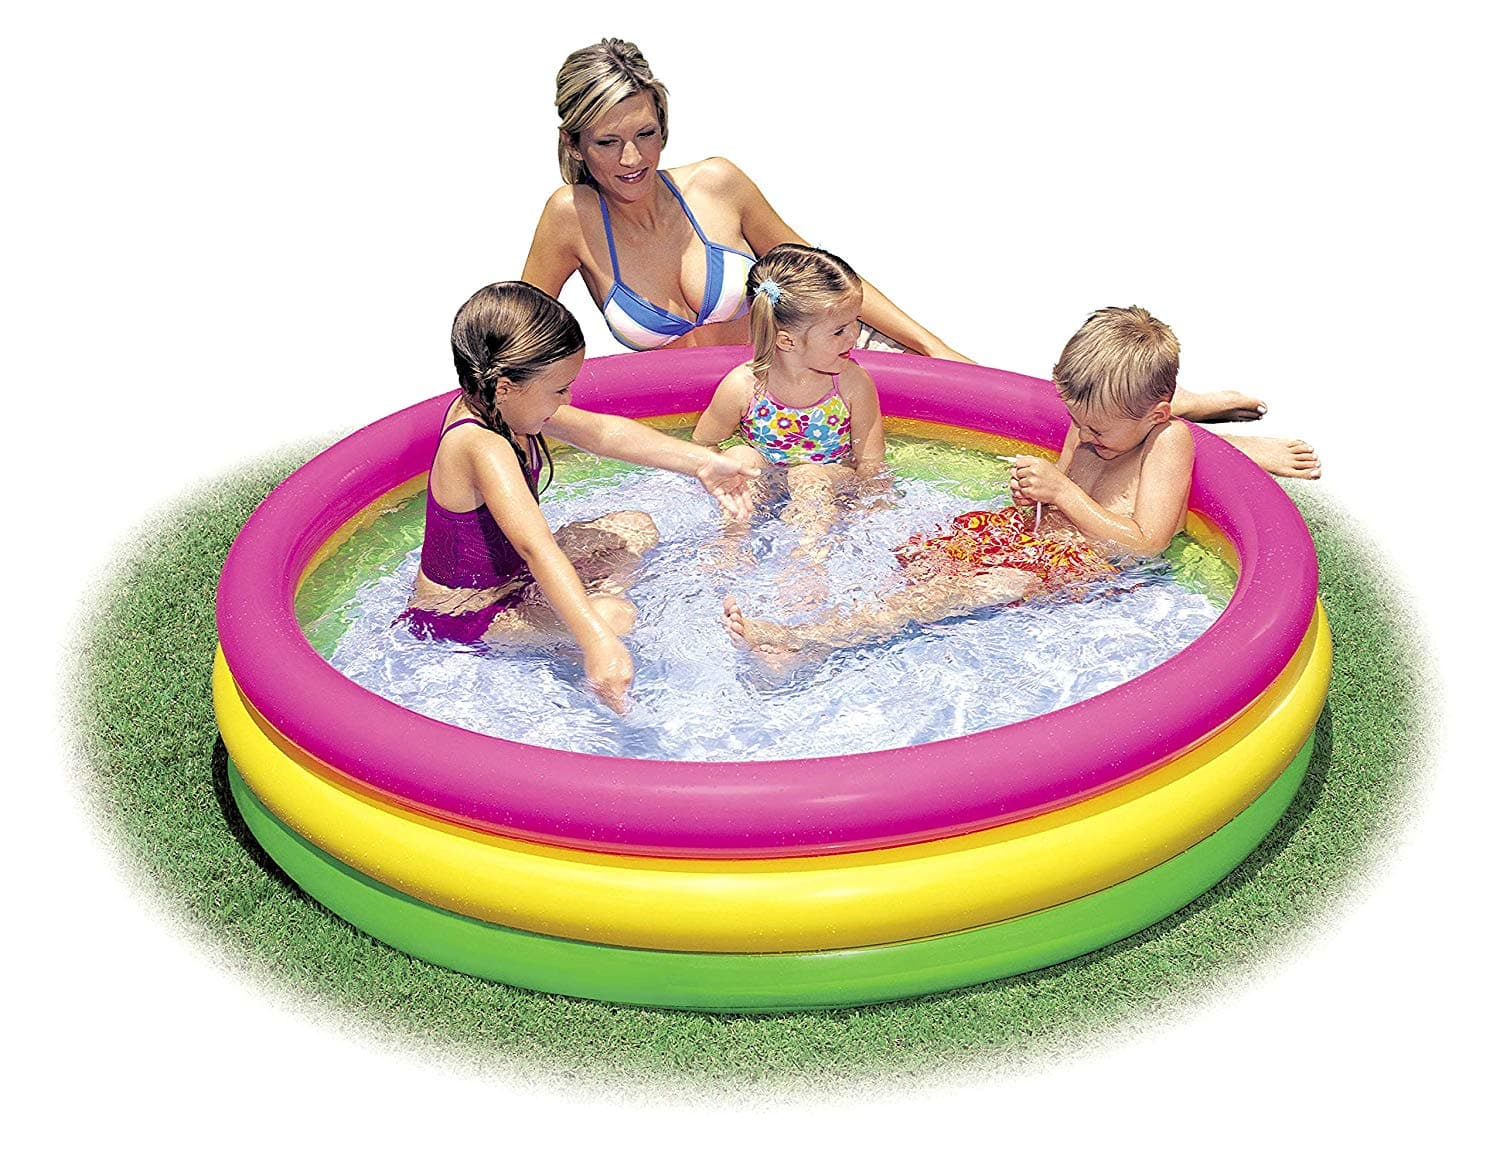 Intex Kiddie Pool - Kid's Summer Sunset Glow Design $12.65